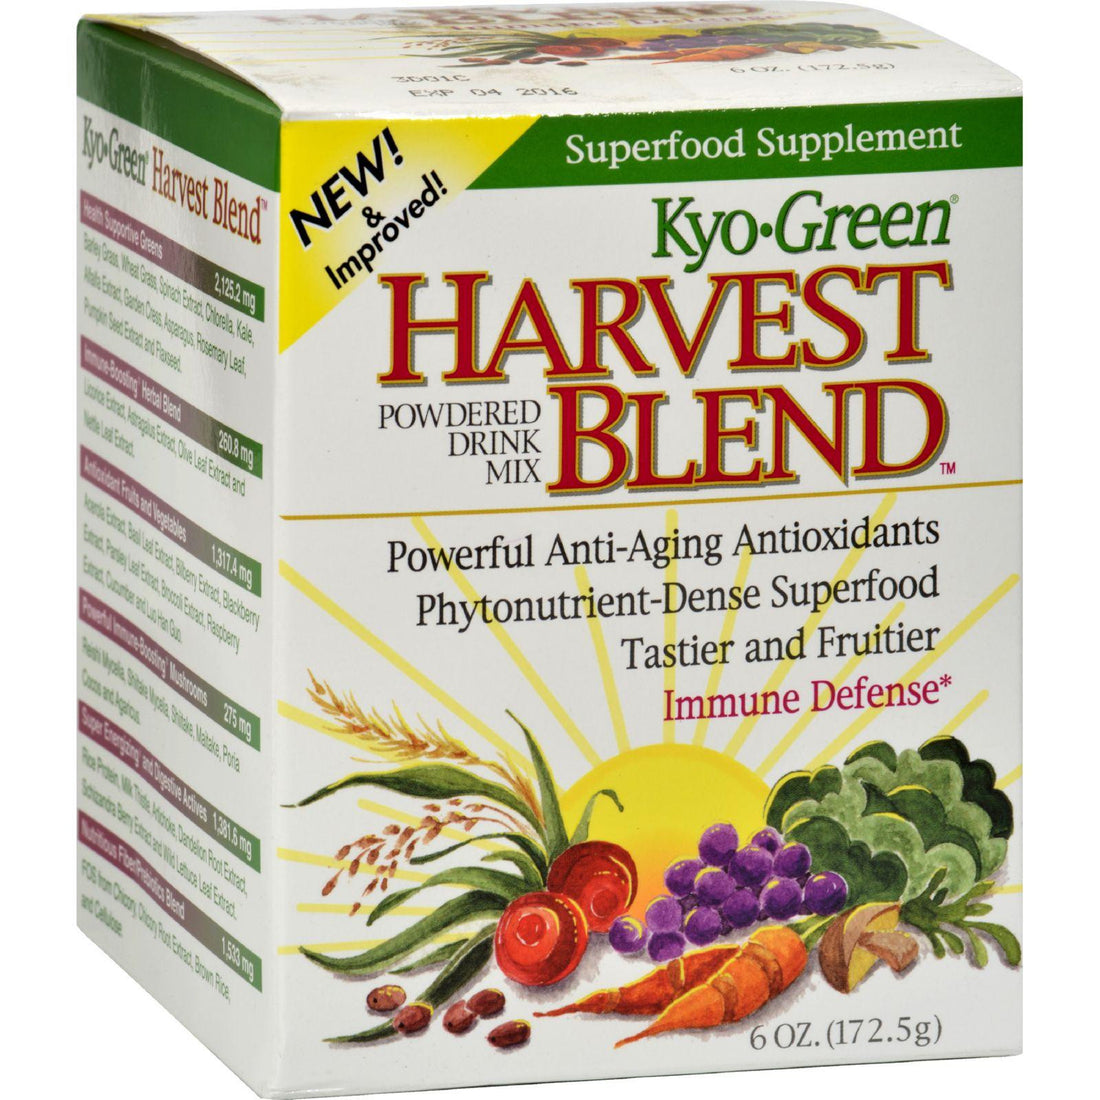 Mother Mantis: Kyolic Green Harvest Blend - 6 Oz Kyolic